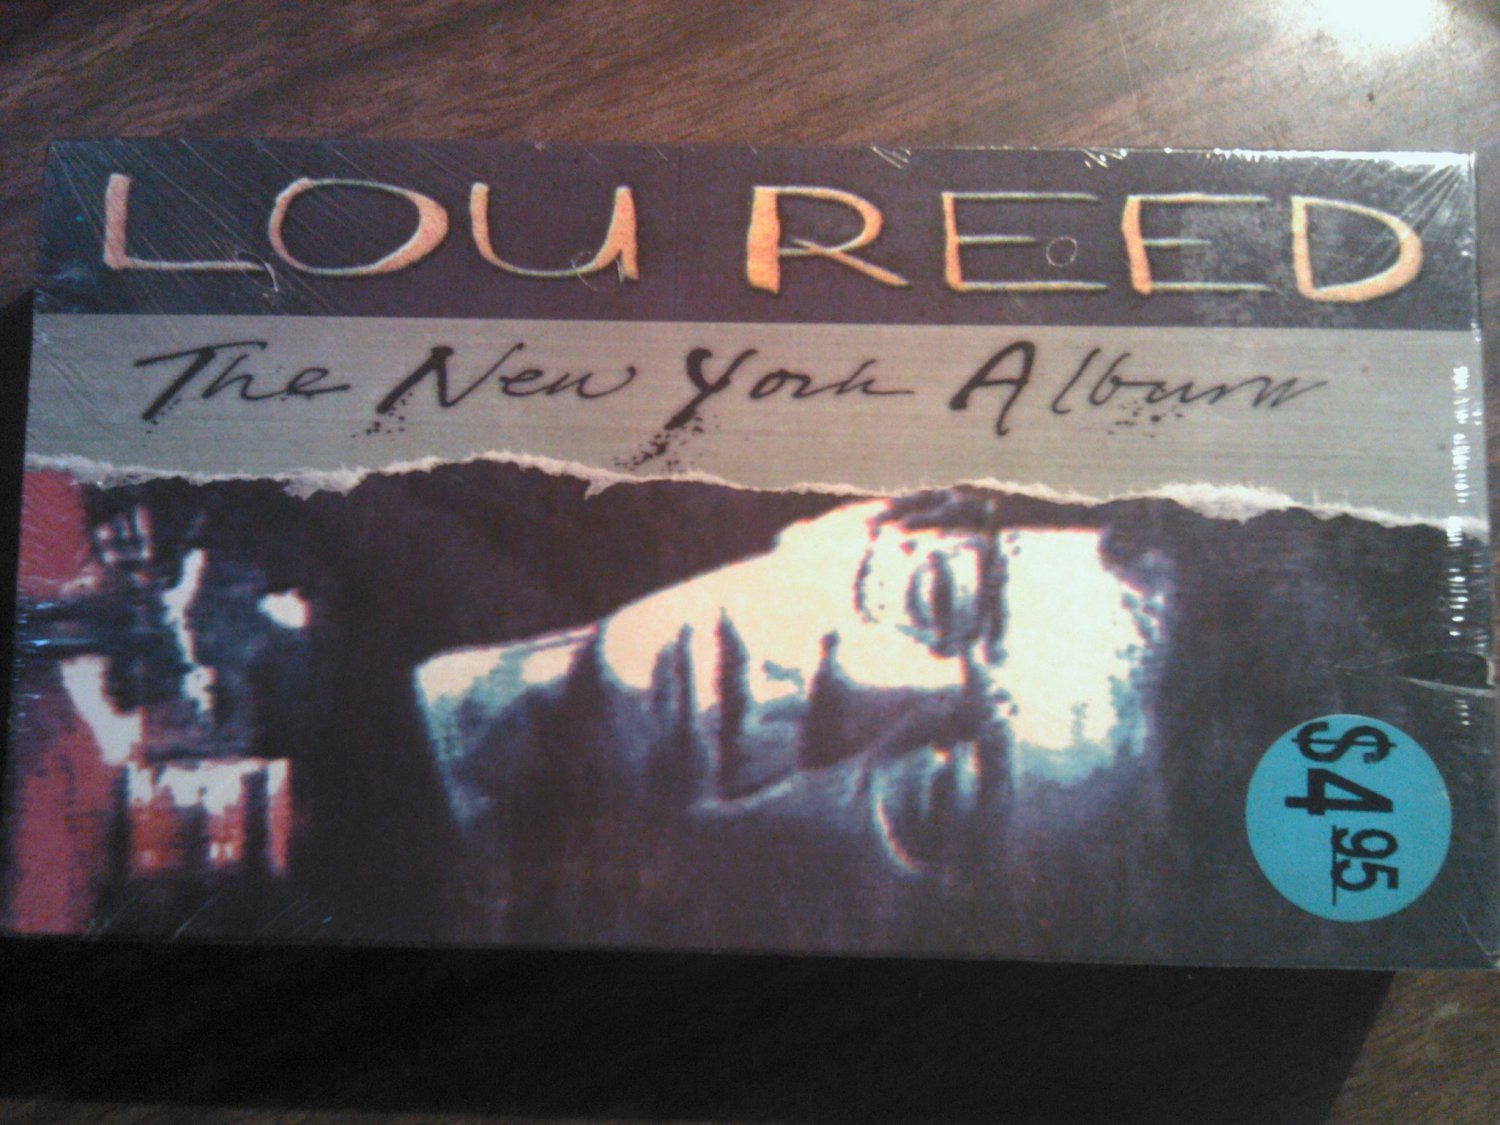 VHS LOU REED the New York Album rob wasserman live SEALED